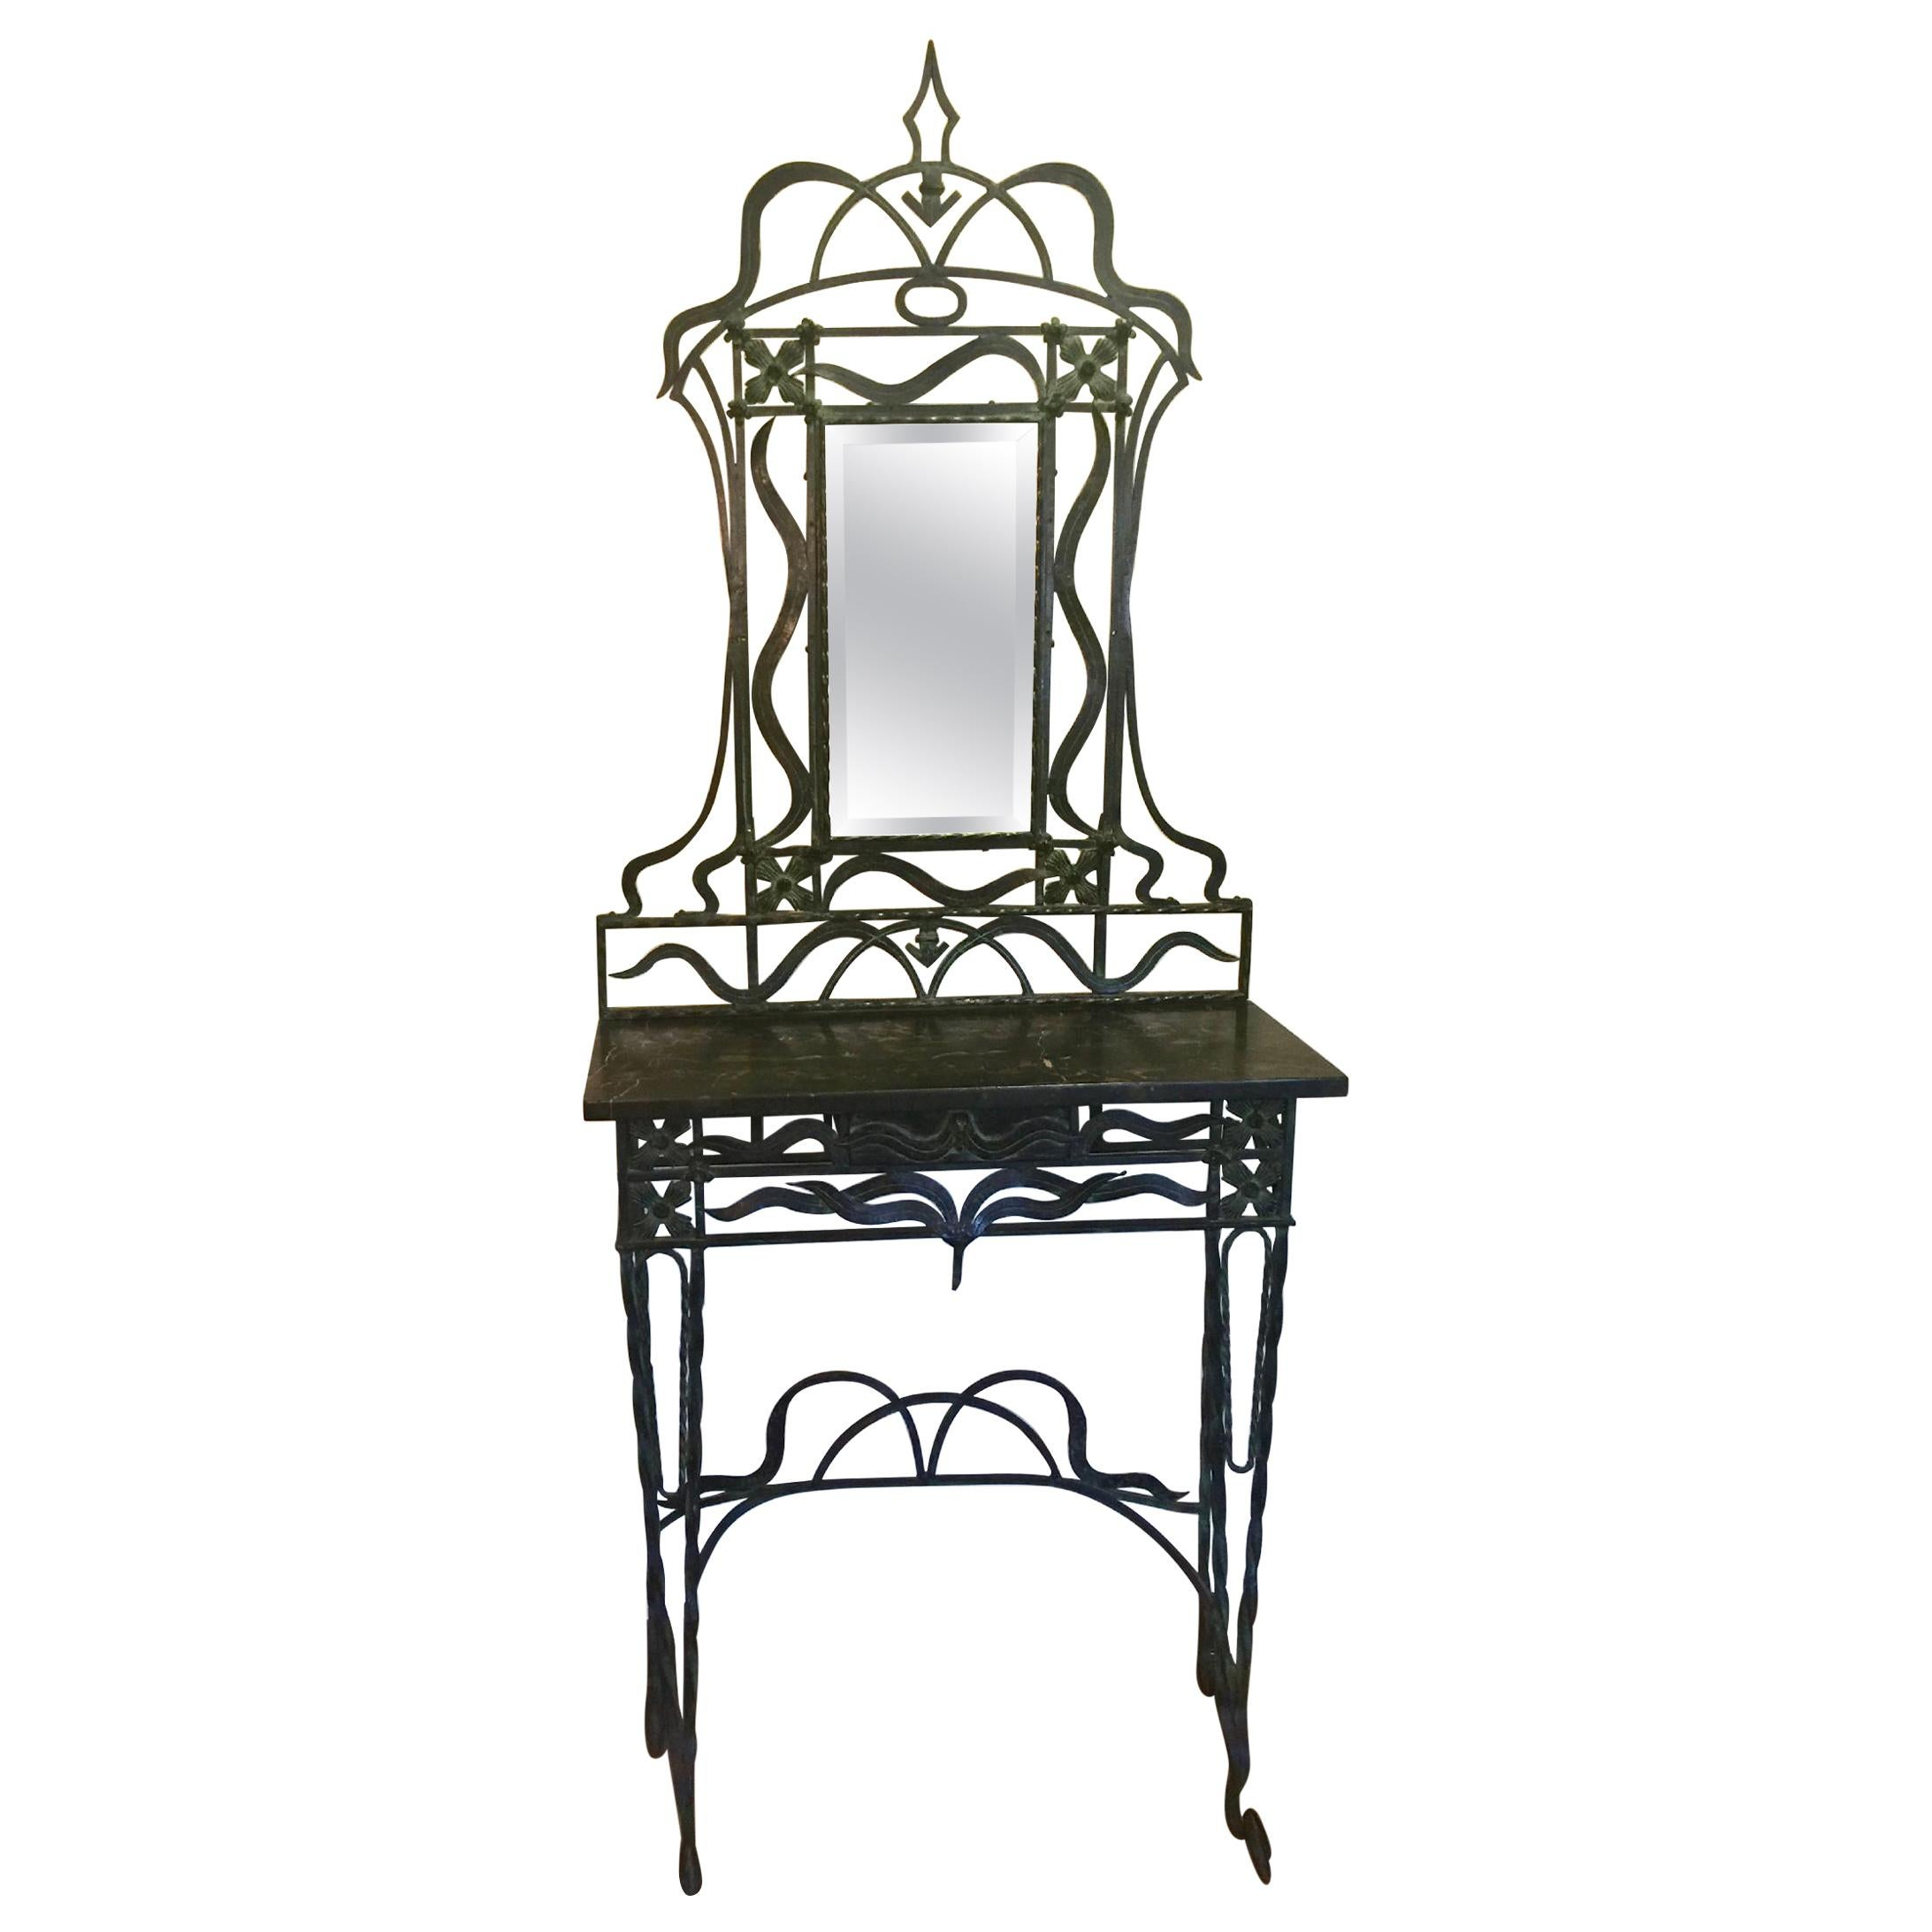 Early 20th Century Handwrought Iron Mirrored Console Table